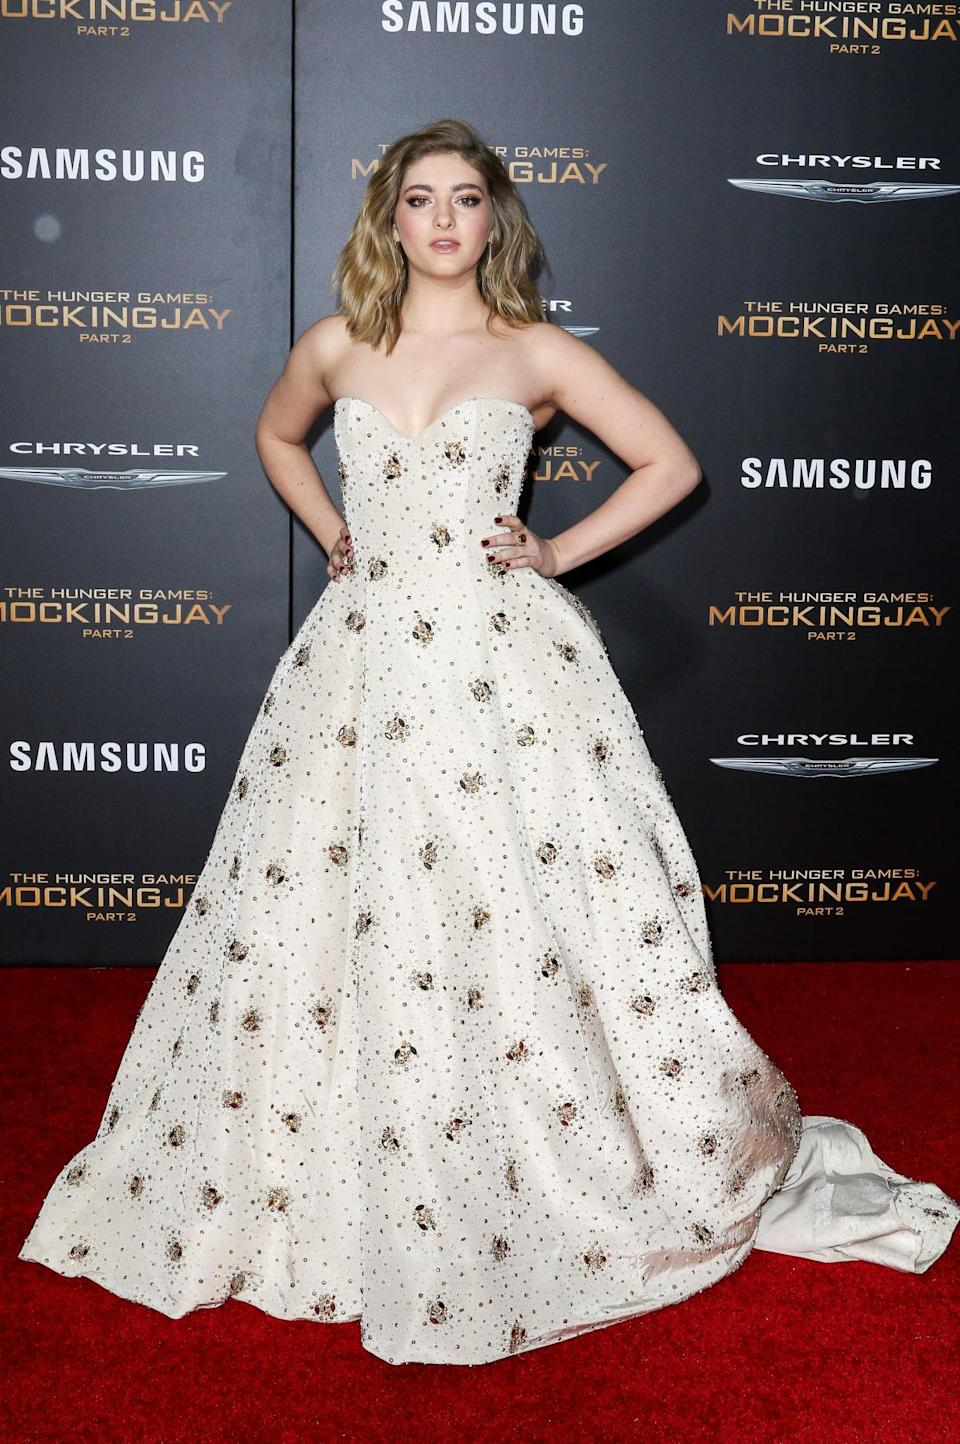 """Willow Shields in Naeem Khan at """"The Hunger Games: Mockingjay Part 2″ LA premiere. [Photo: Rex]"""